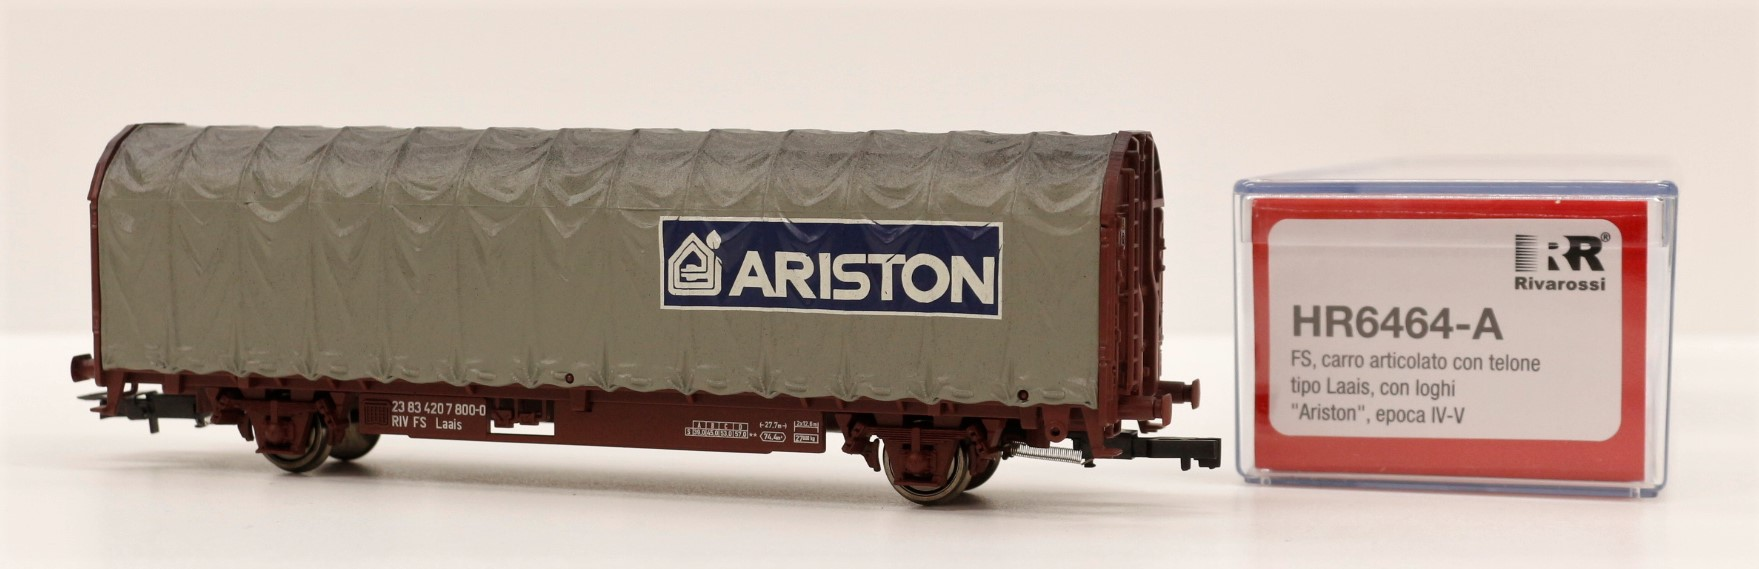 HR6464-A Rivarossi HO Carro FS telonato ARISTON ep. V-VI scala 1:87